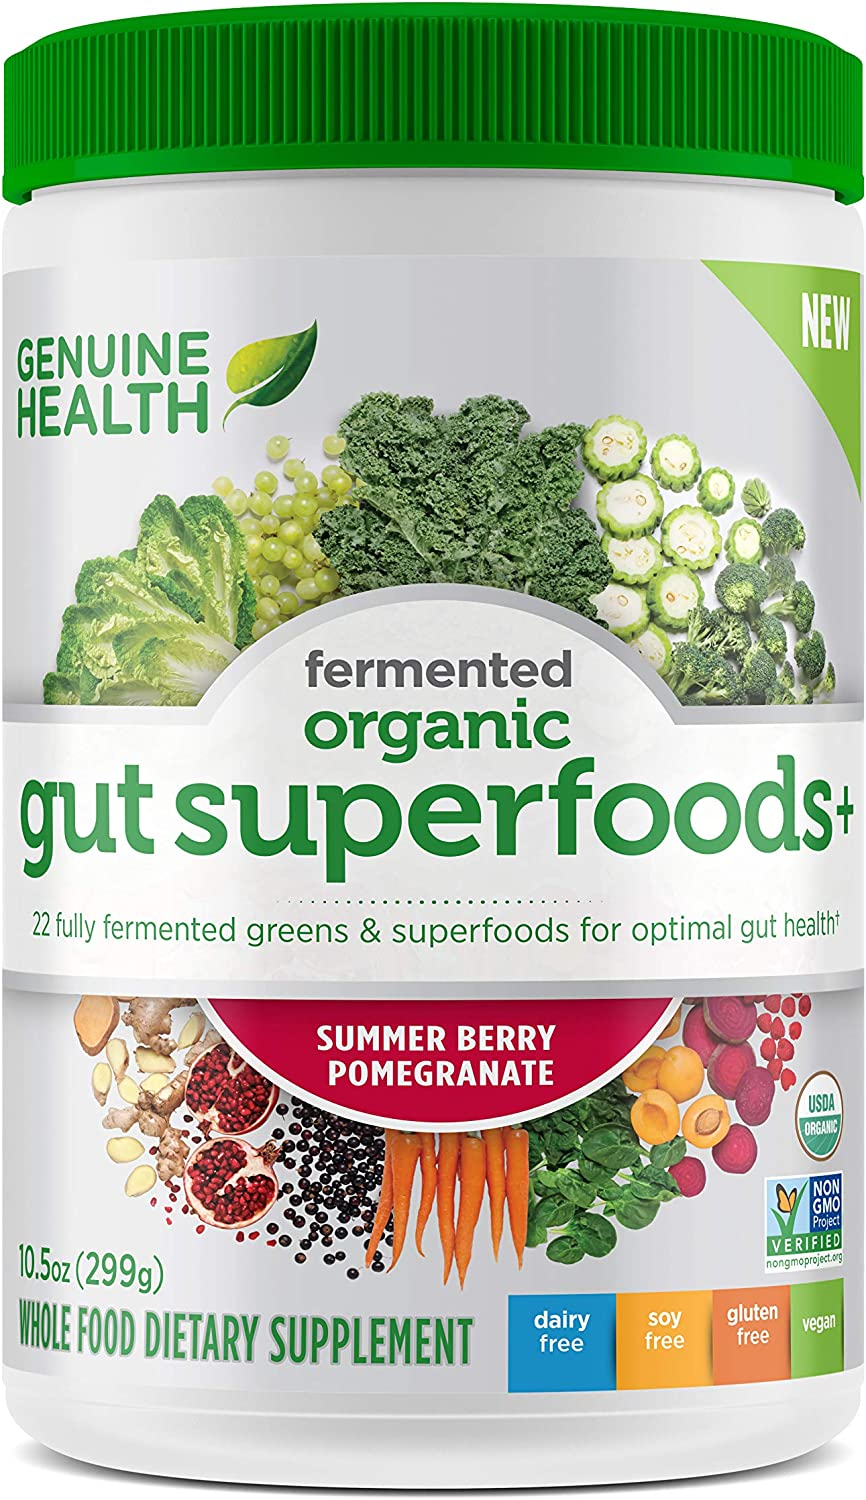 Genuine Health Fermented Organic Gut Superfoods+, Summer Berry Pomegranate, Vegan Superfoods Powder, 10.5oz Tub, 23 Servings